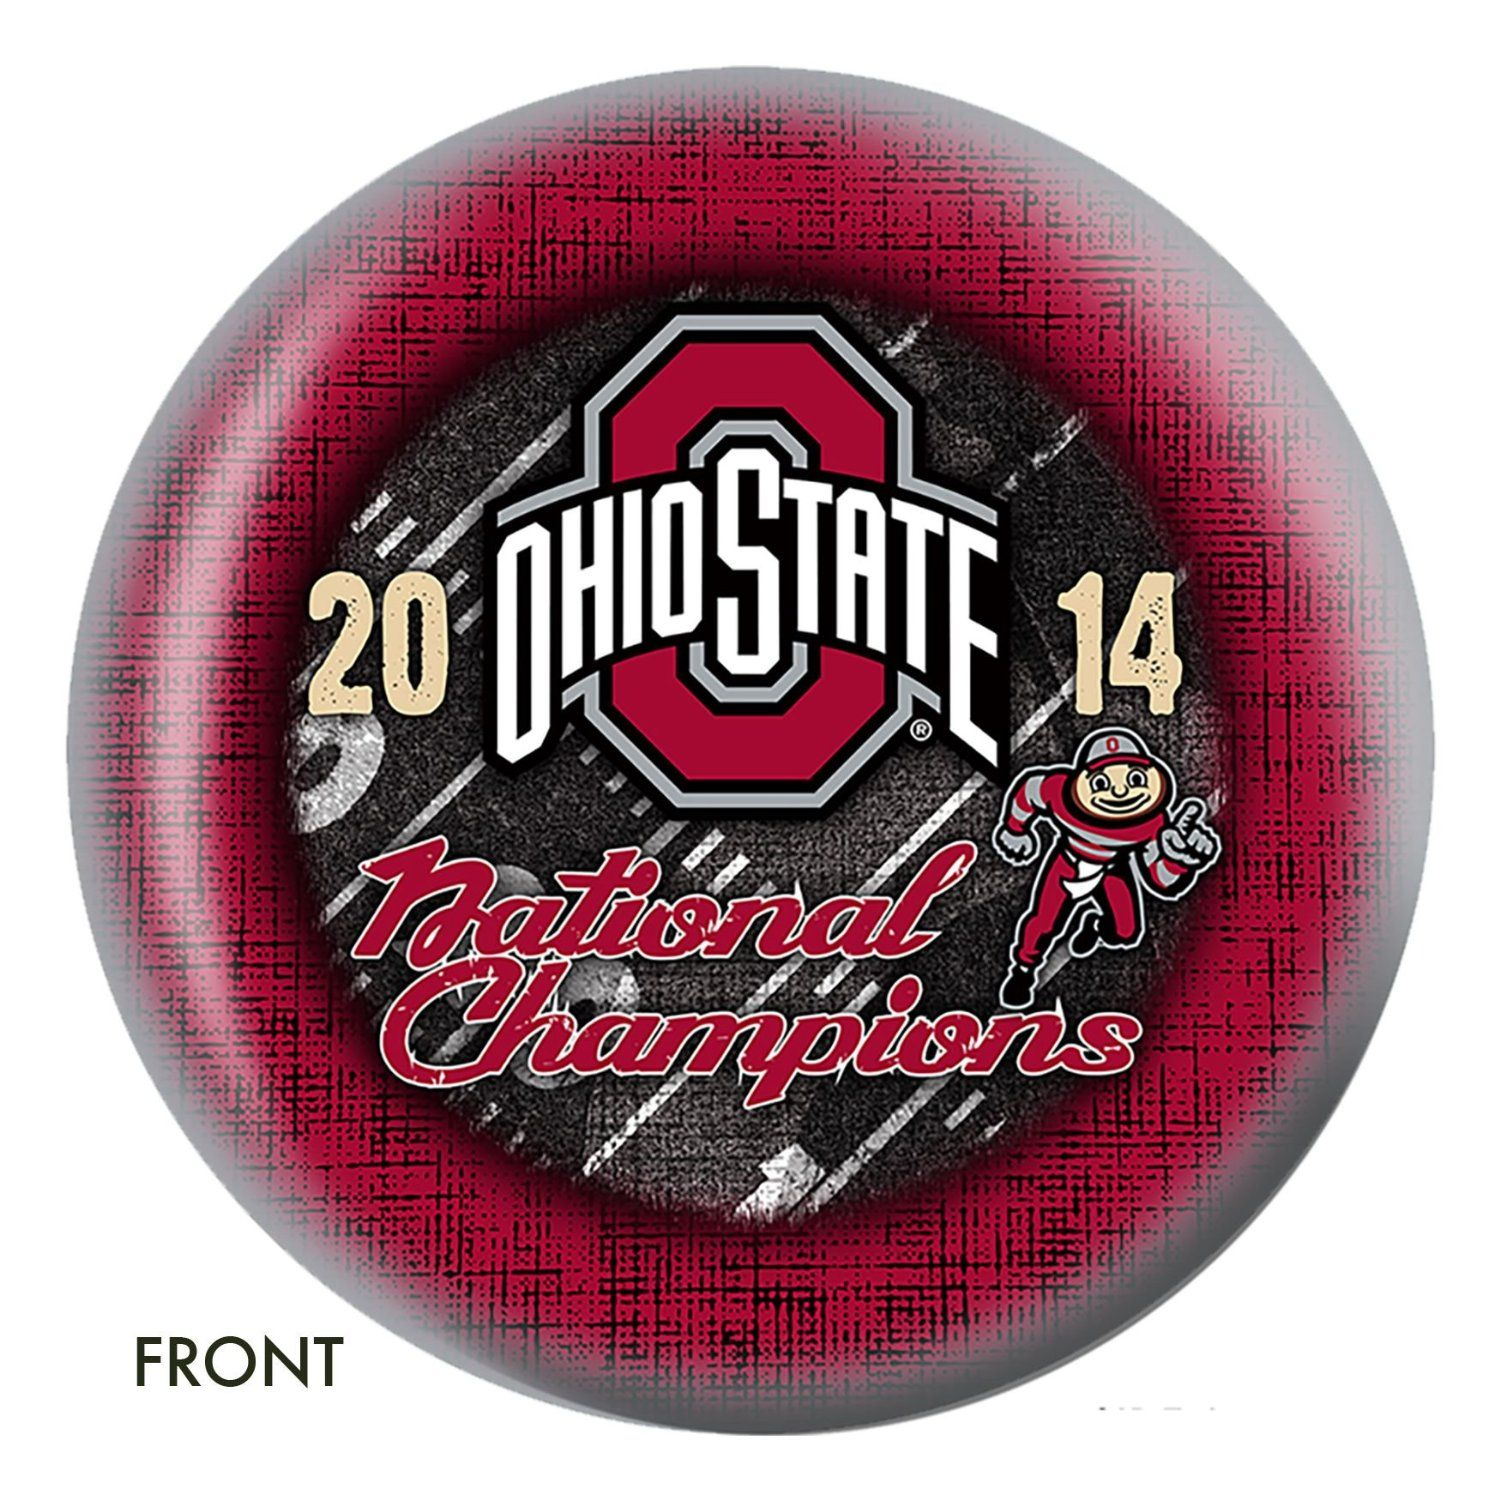 The Ohio State University 2014 National Championship Bowling Ball Click On Image Ohio State The Ohio State University Ohio State University